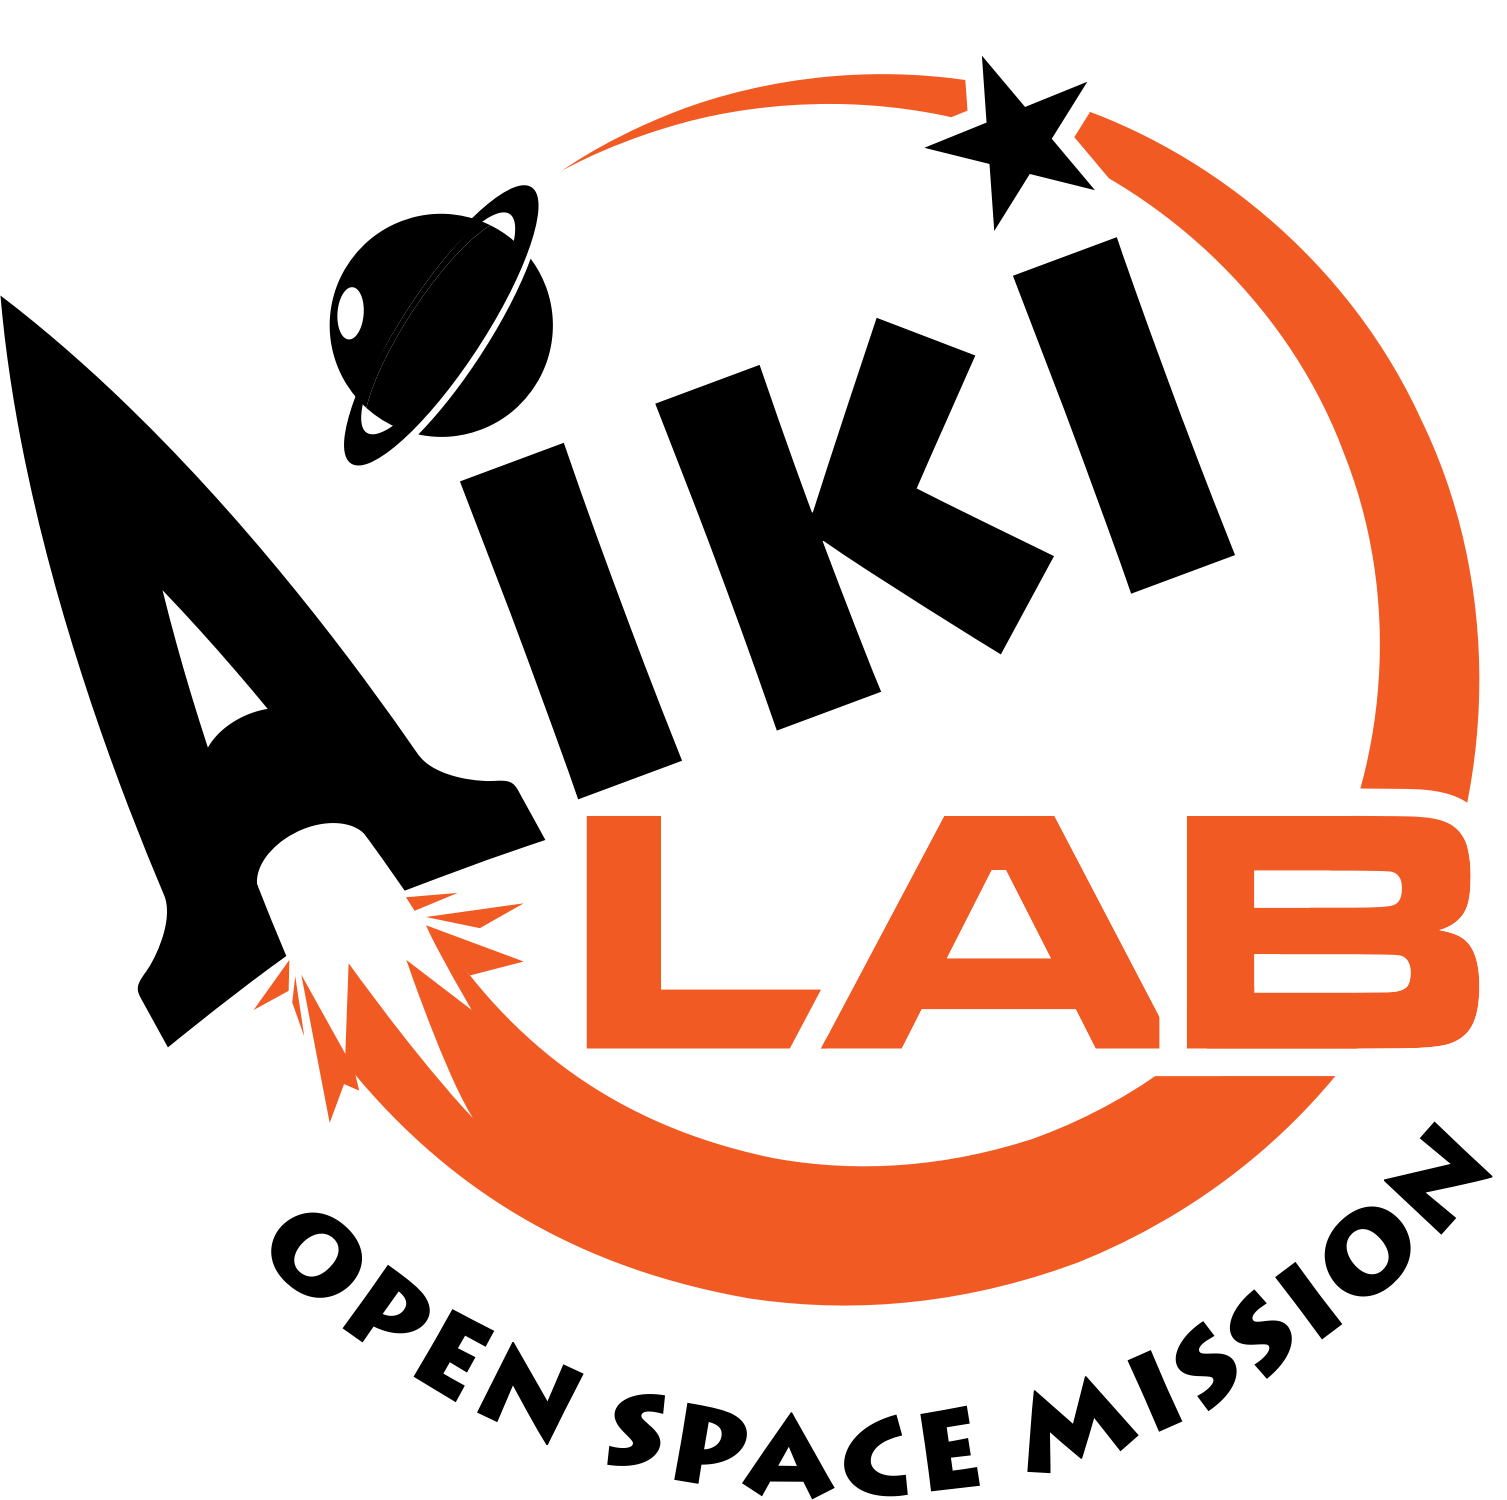 Aiki Lab open space mission by georges-dahdouh